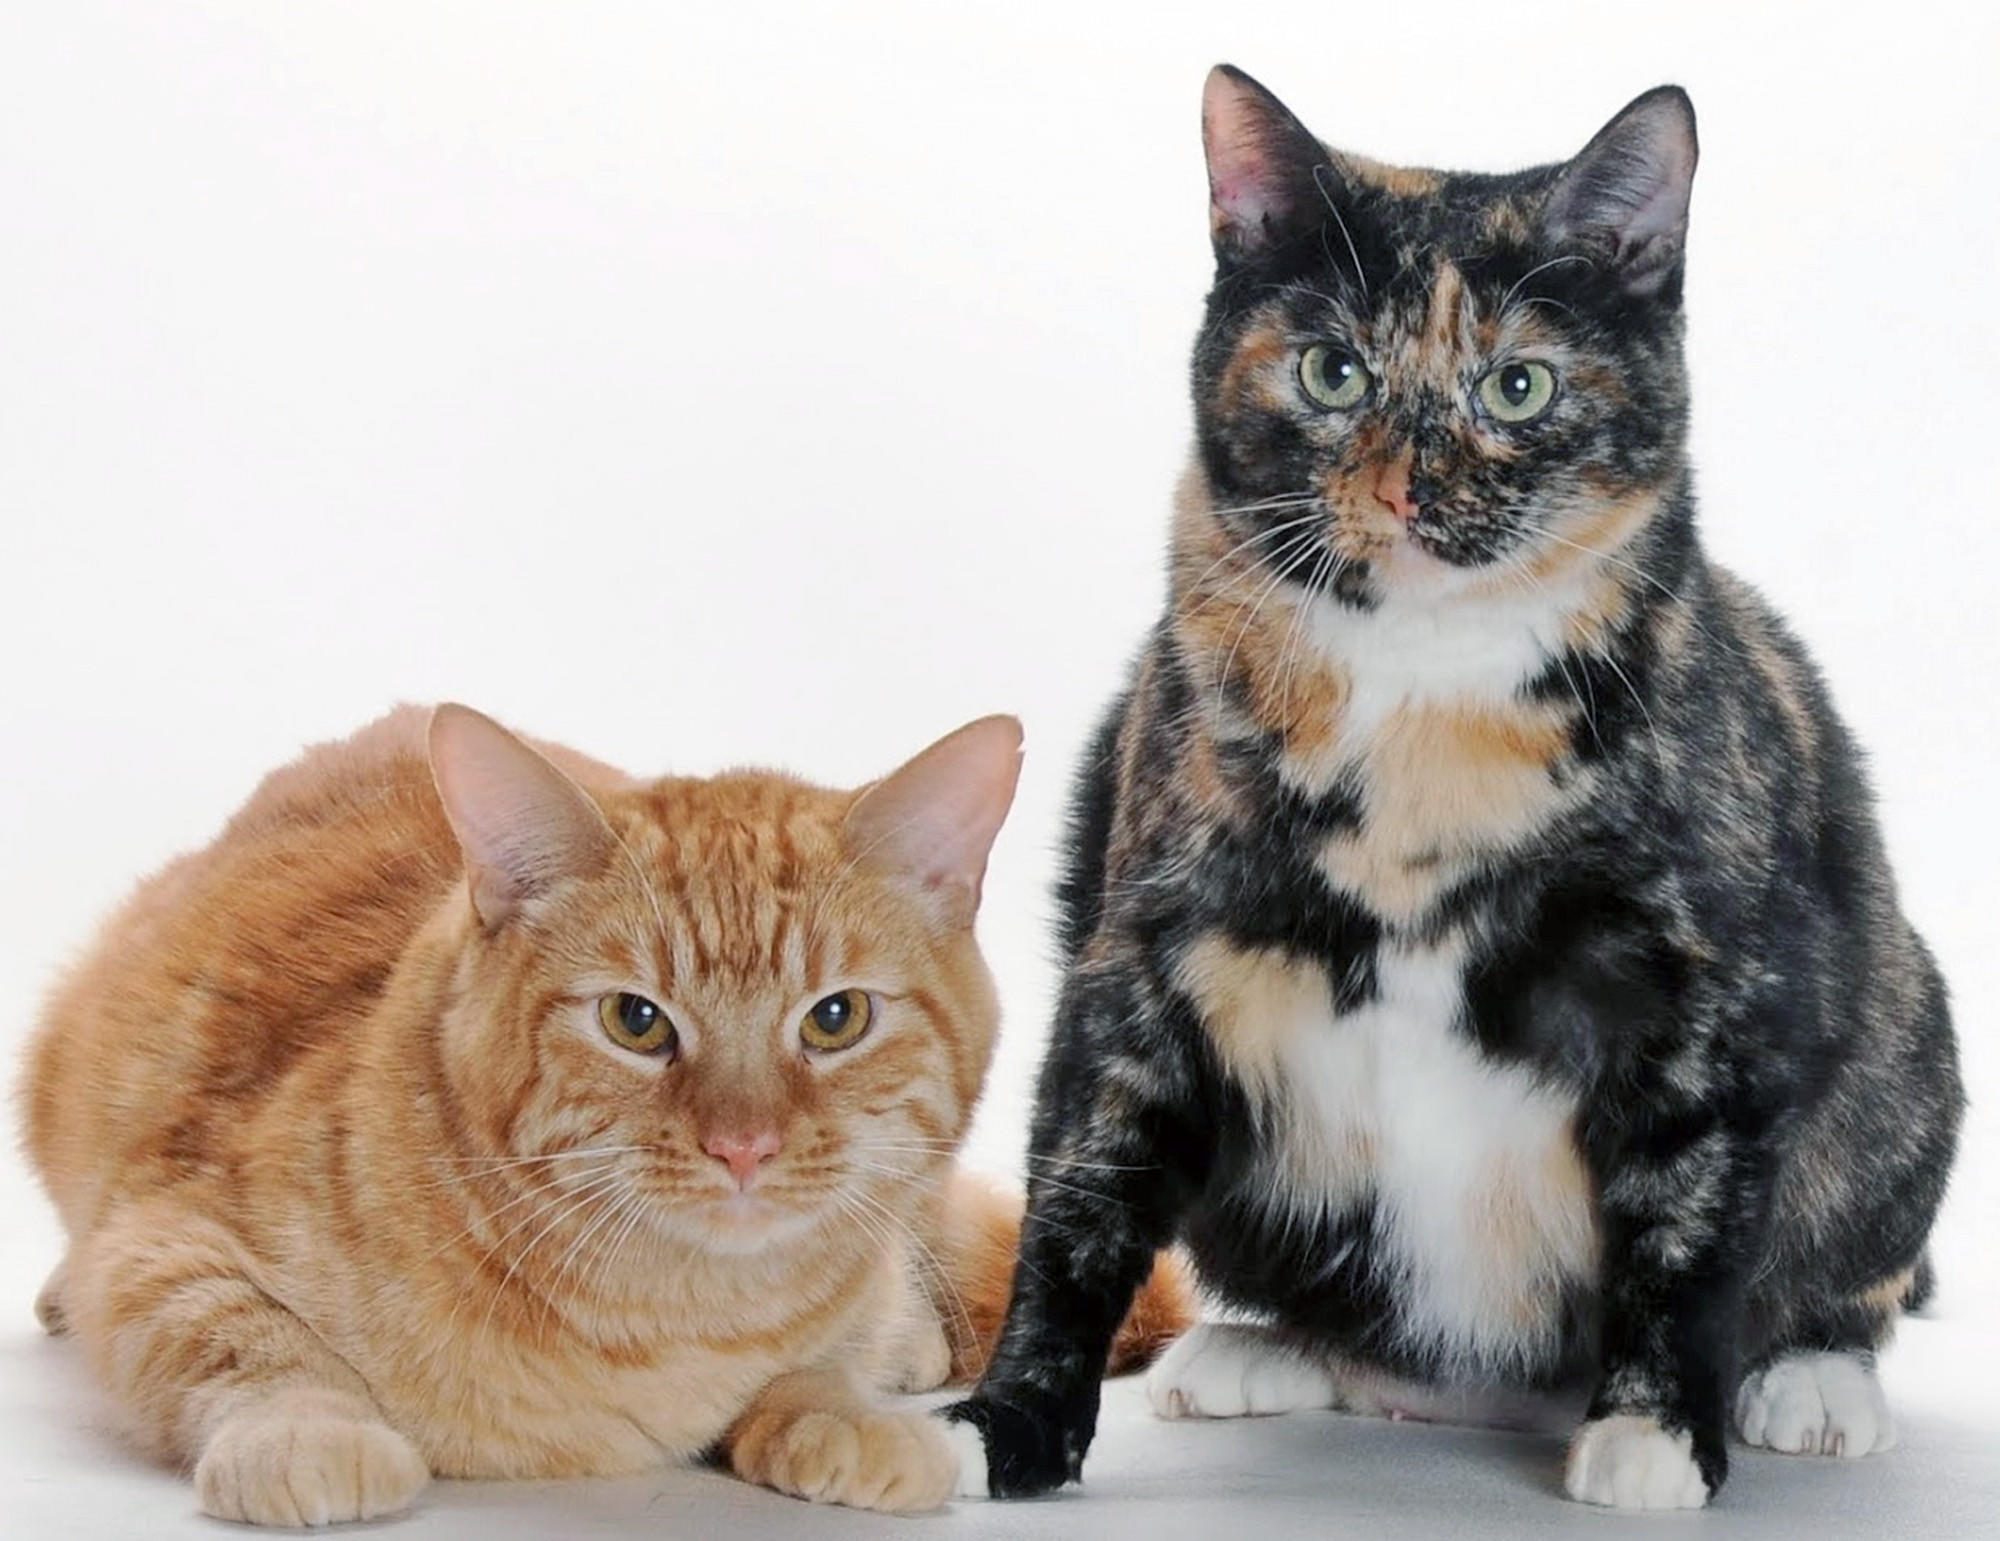 Cas and Oliver are mother and son, up for adoption by the Burbank Animal Shelter.